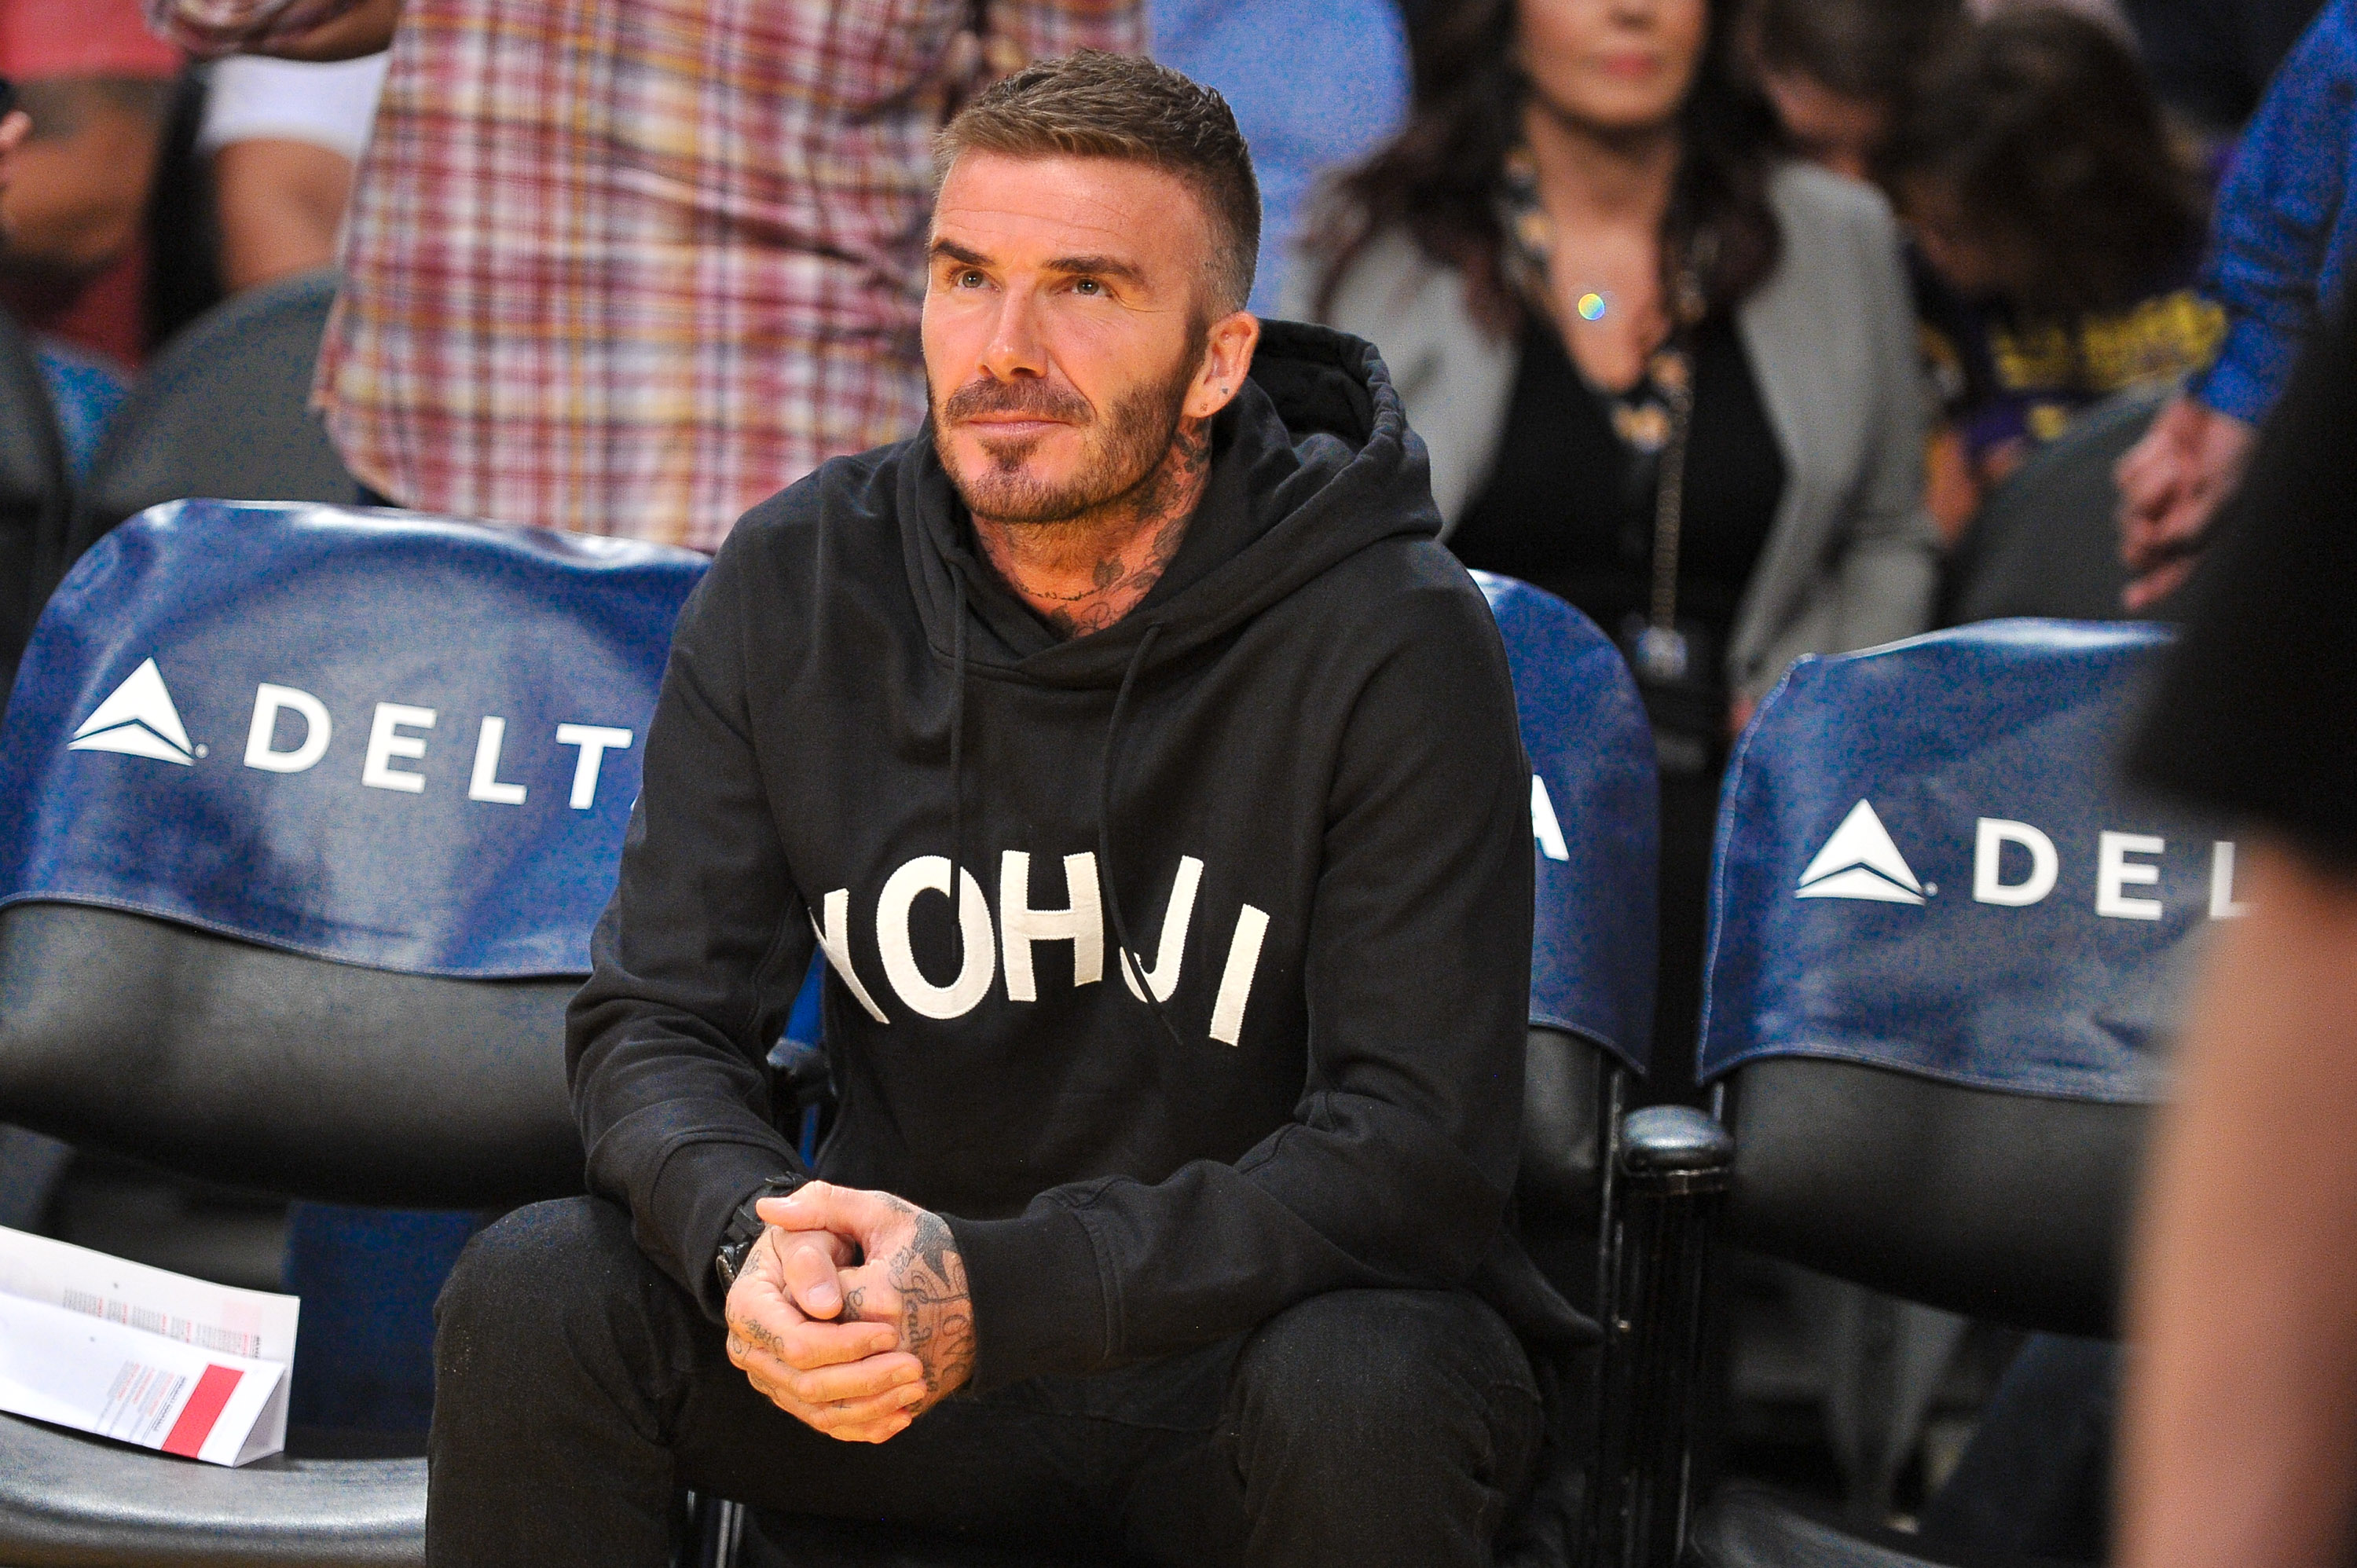 LOS ANGELES, CALIFORNIA - OCTOBER 27: David Beckham attends a basketball game between the Los Angeles Lakers and the Charlotte Hornets at Staples Center on October 27, 2019 in Los Angeles, California. (Photo by Allen Berezovsky/Getty Images)